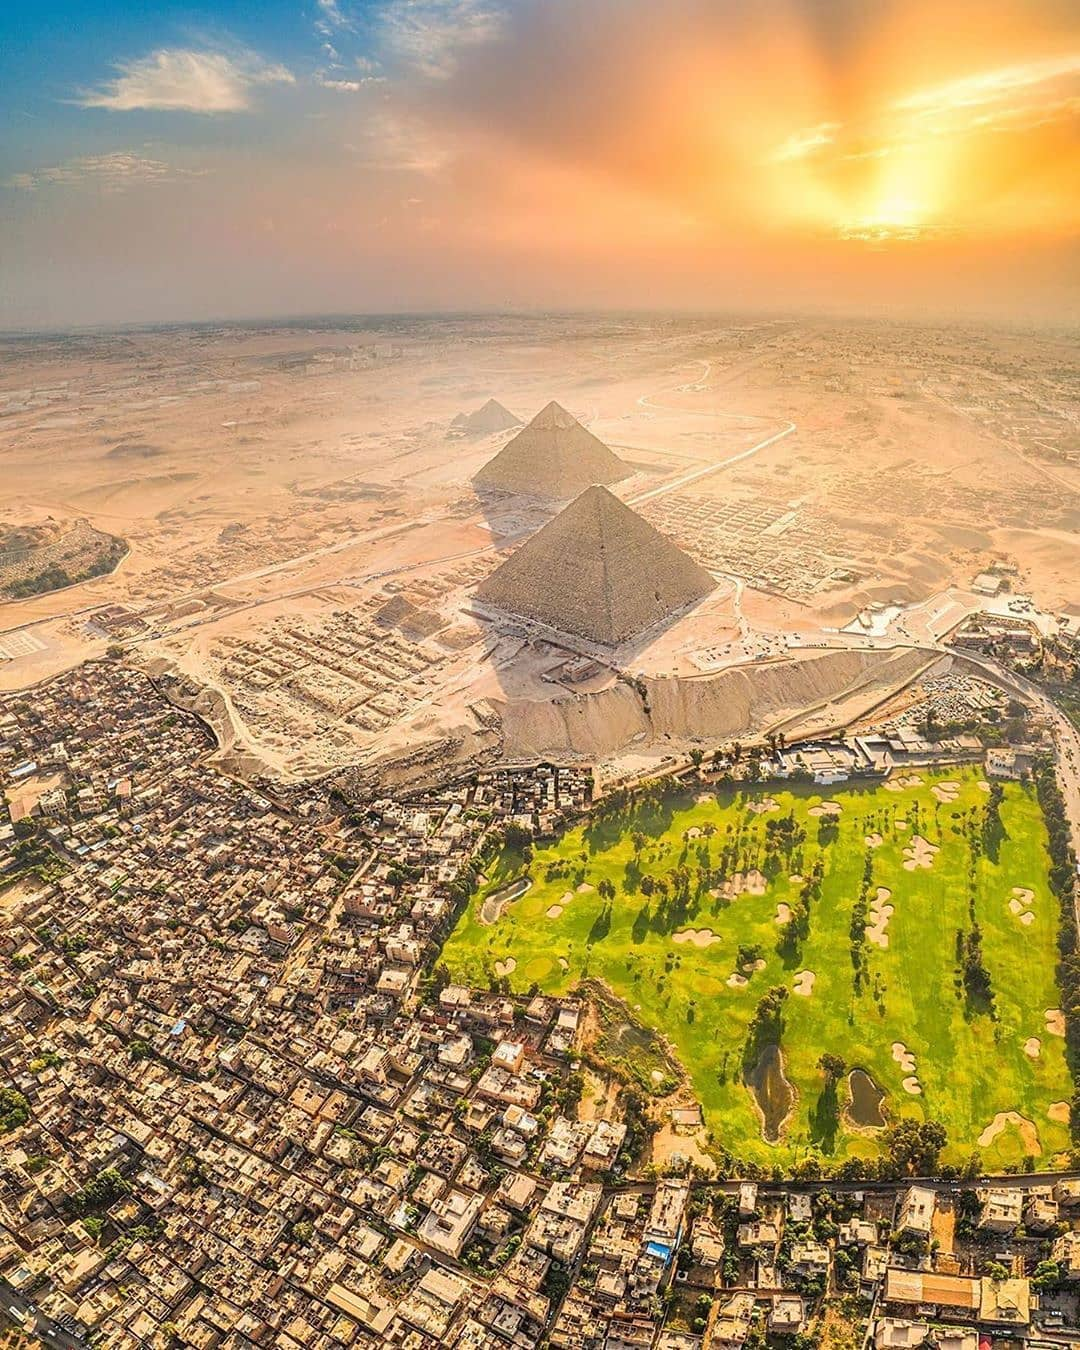 Pyramids of Giza, Cairo, Egypt – Most Beautiful Picture